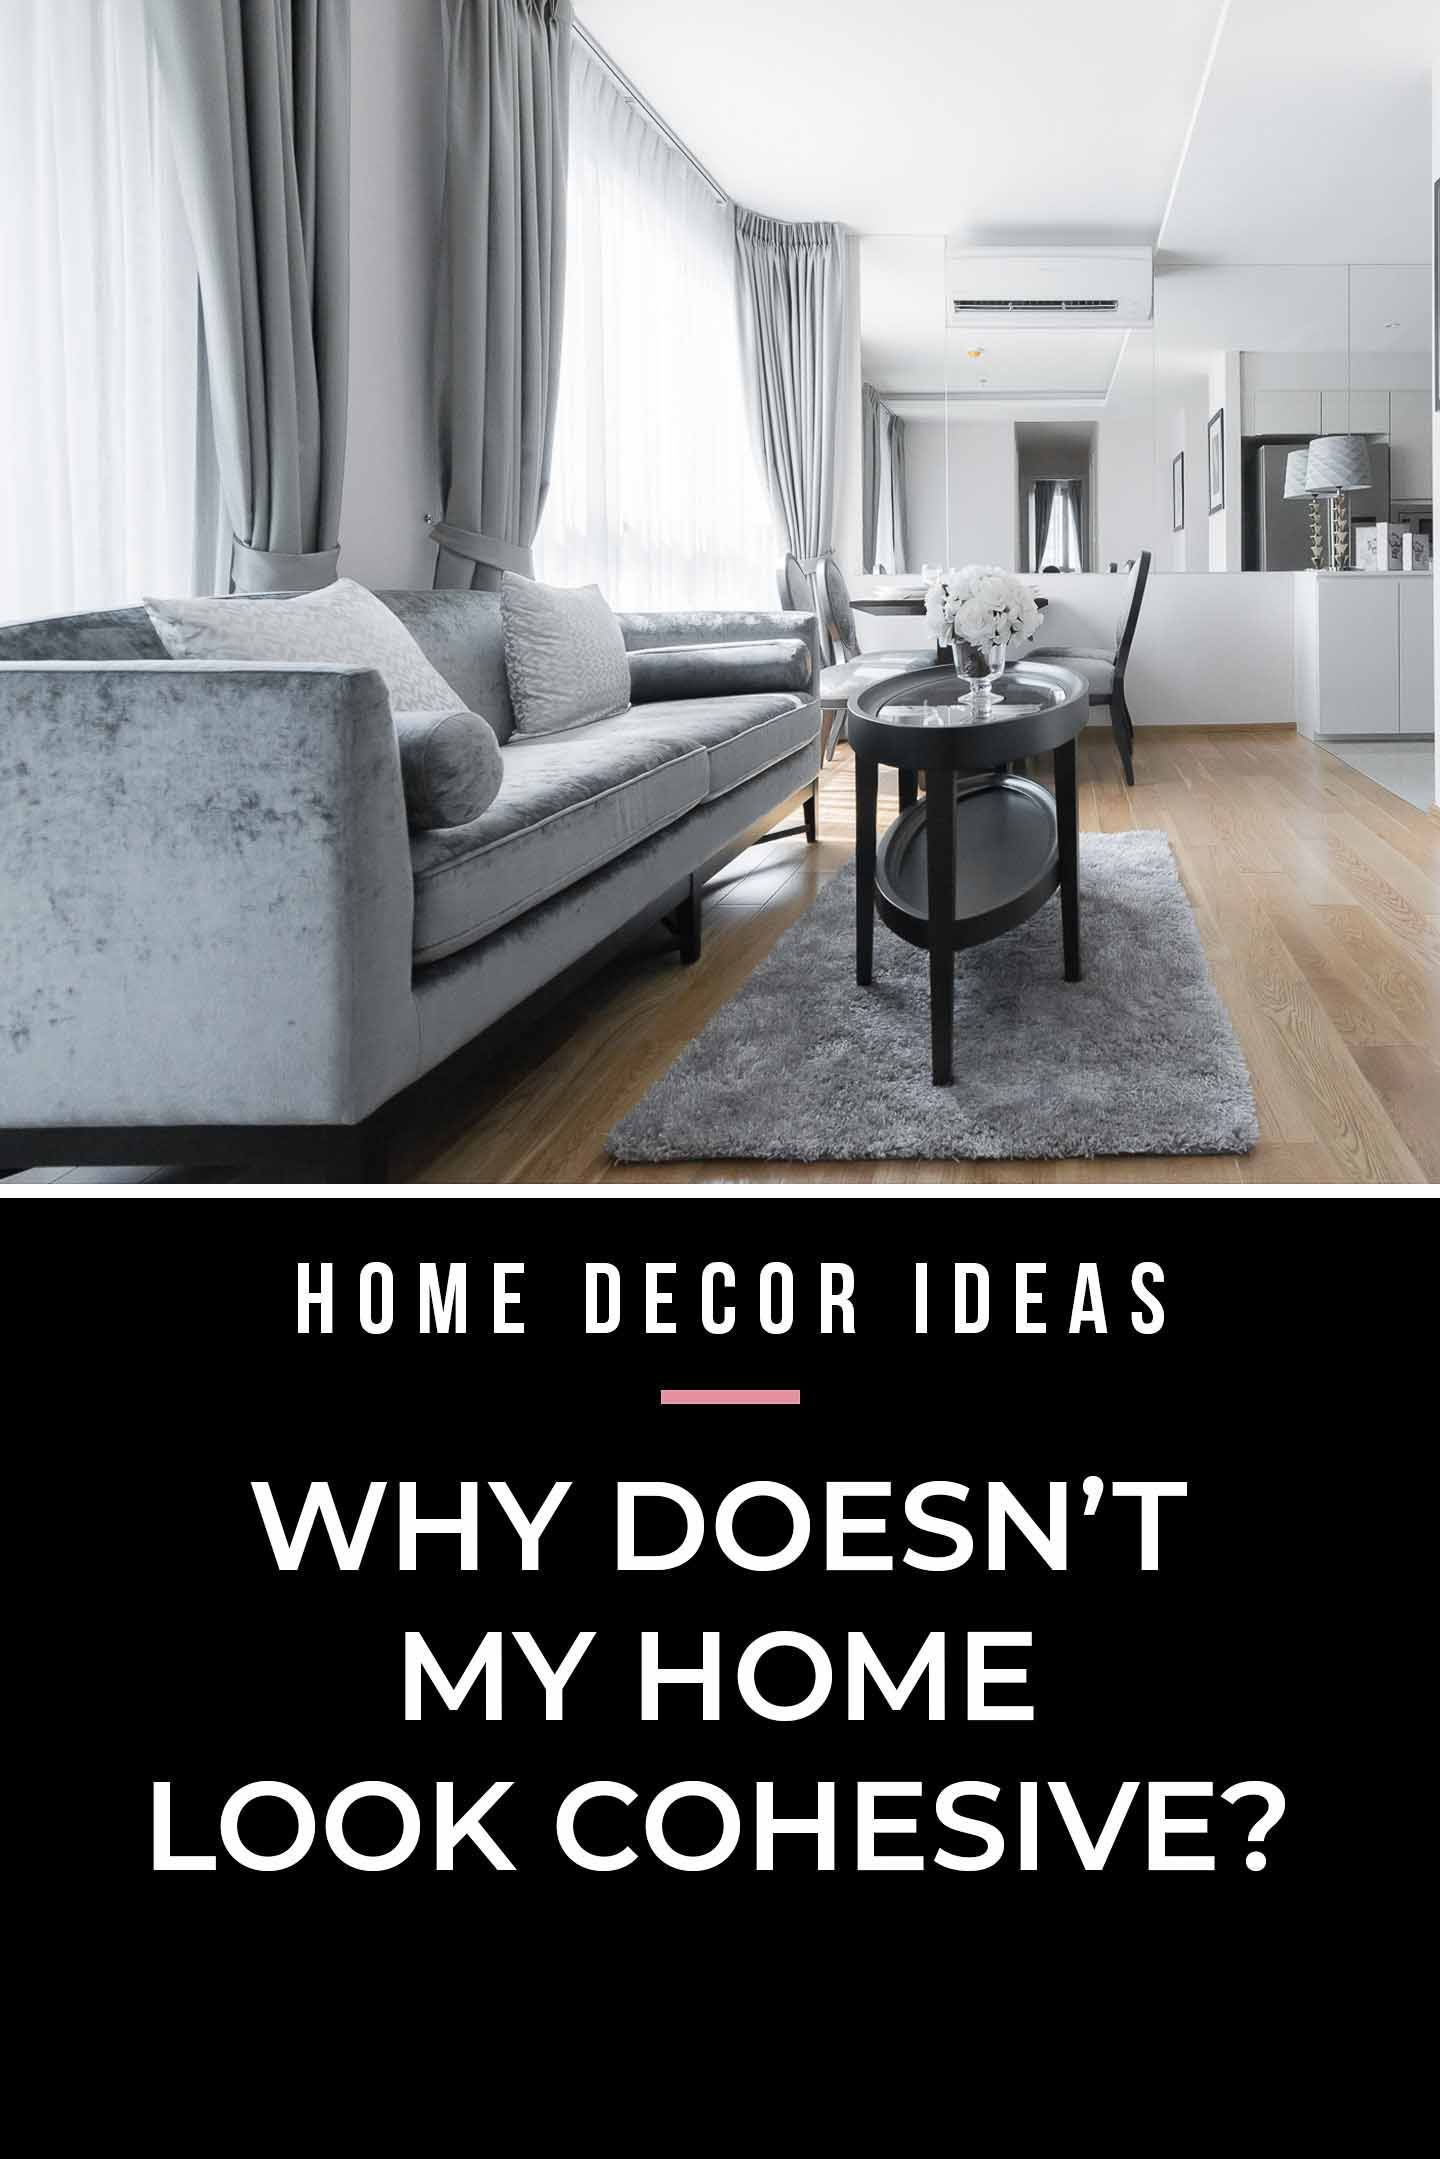 I love these interior decor ideas for how to make a cohesive home design. They are so simple to do and will make interior decorating your rooms that flow so much easier.  #fromhousetohome #homedecorideas #decoratingideas #decoratingtips  #interiordecoratingtips